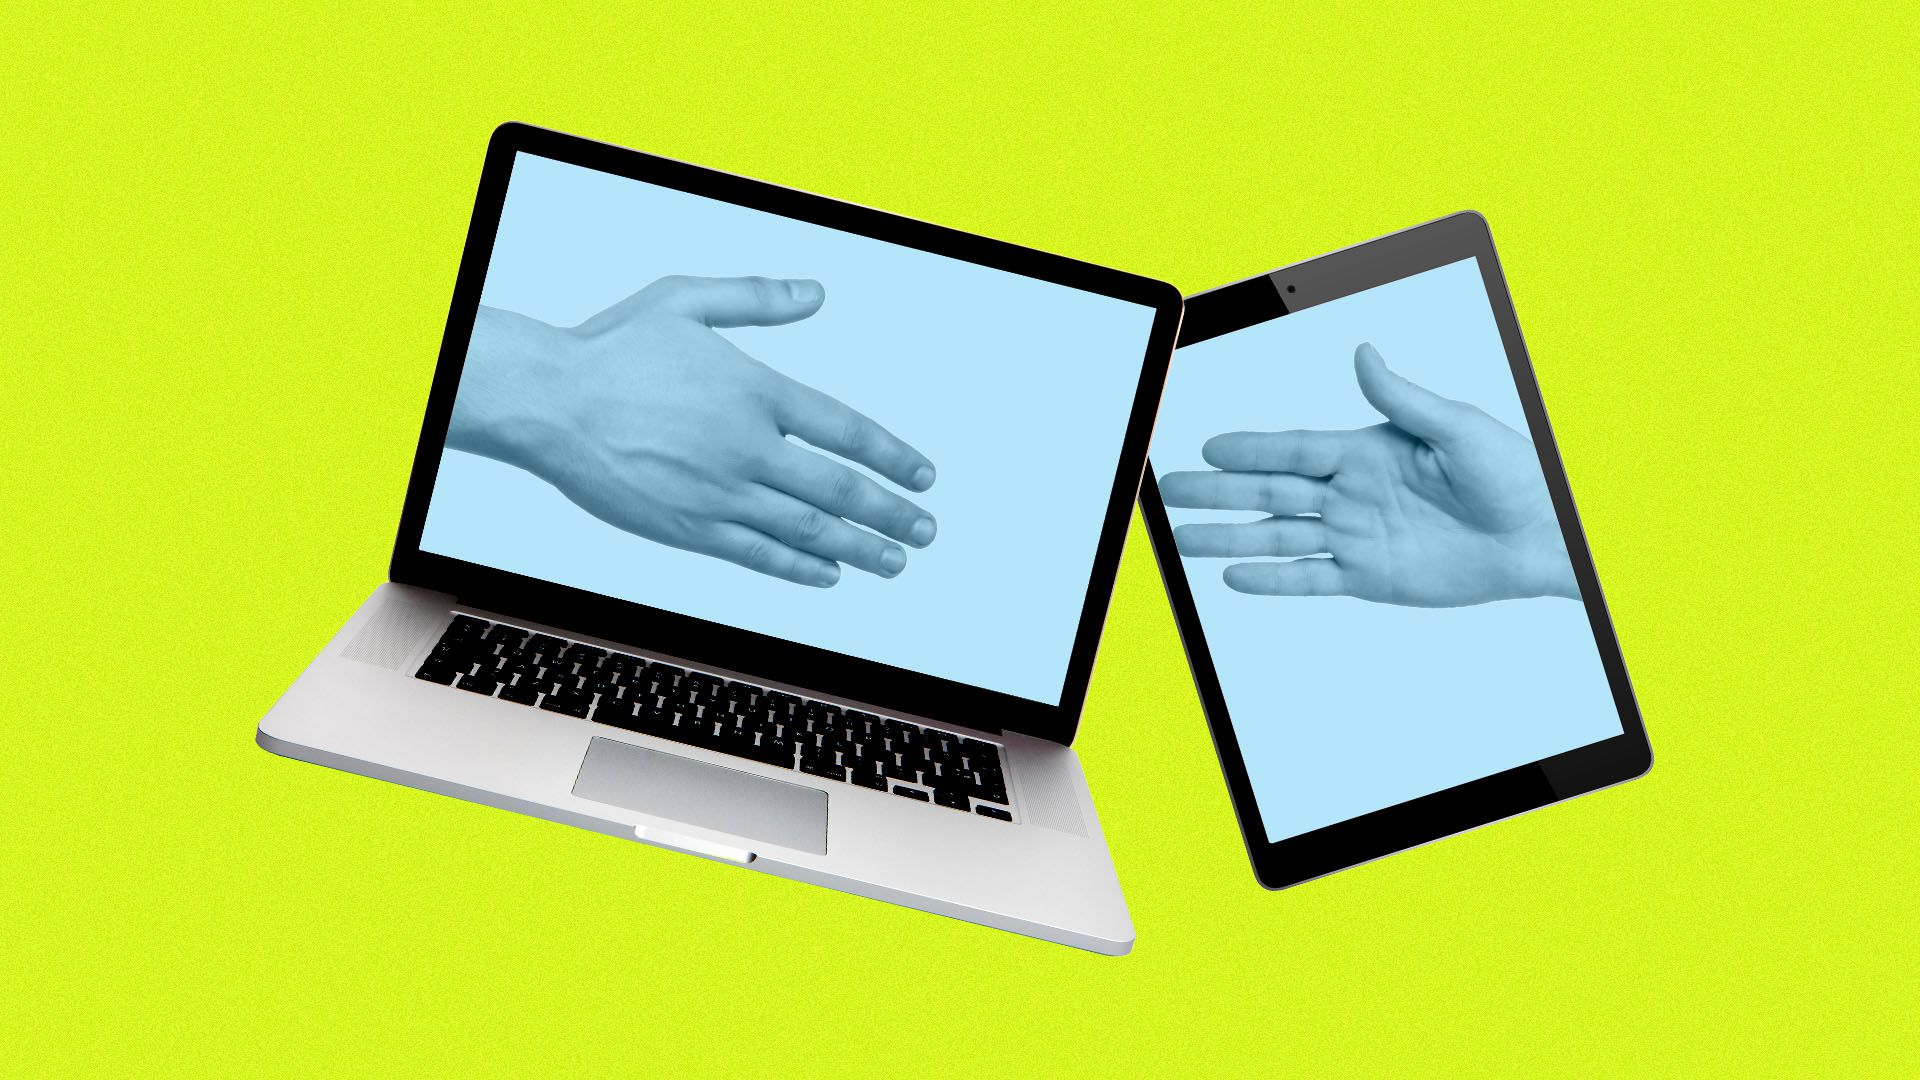 Illustration of a Mac laptop and an IPad with hands reaching to clasp